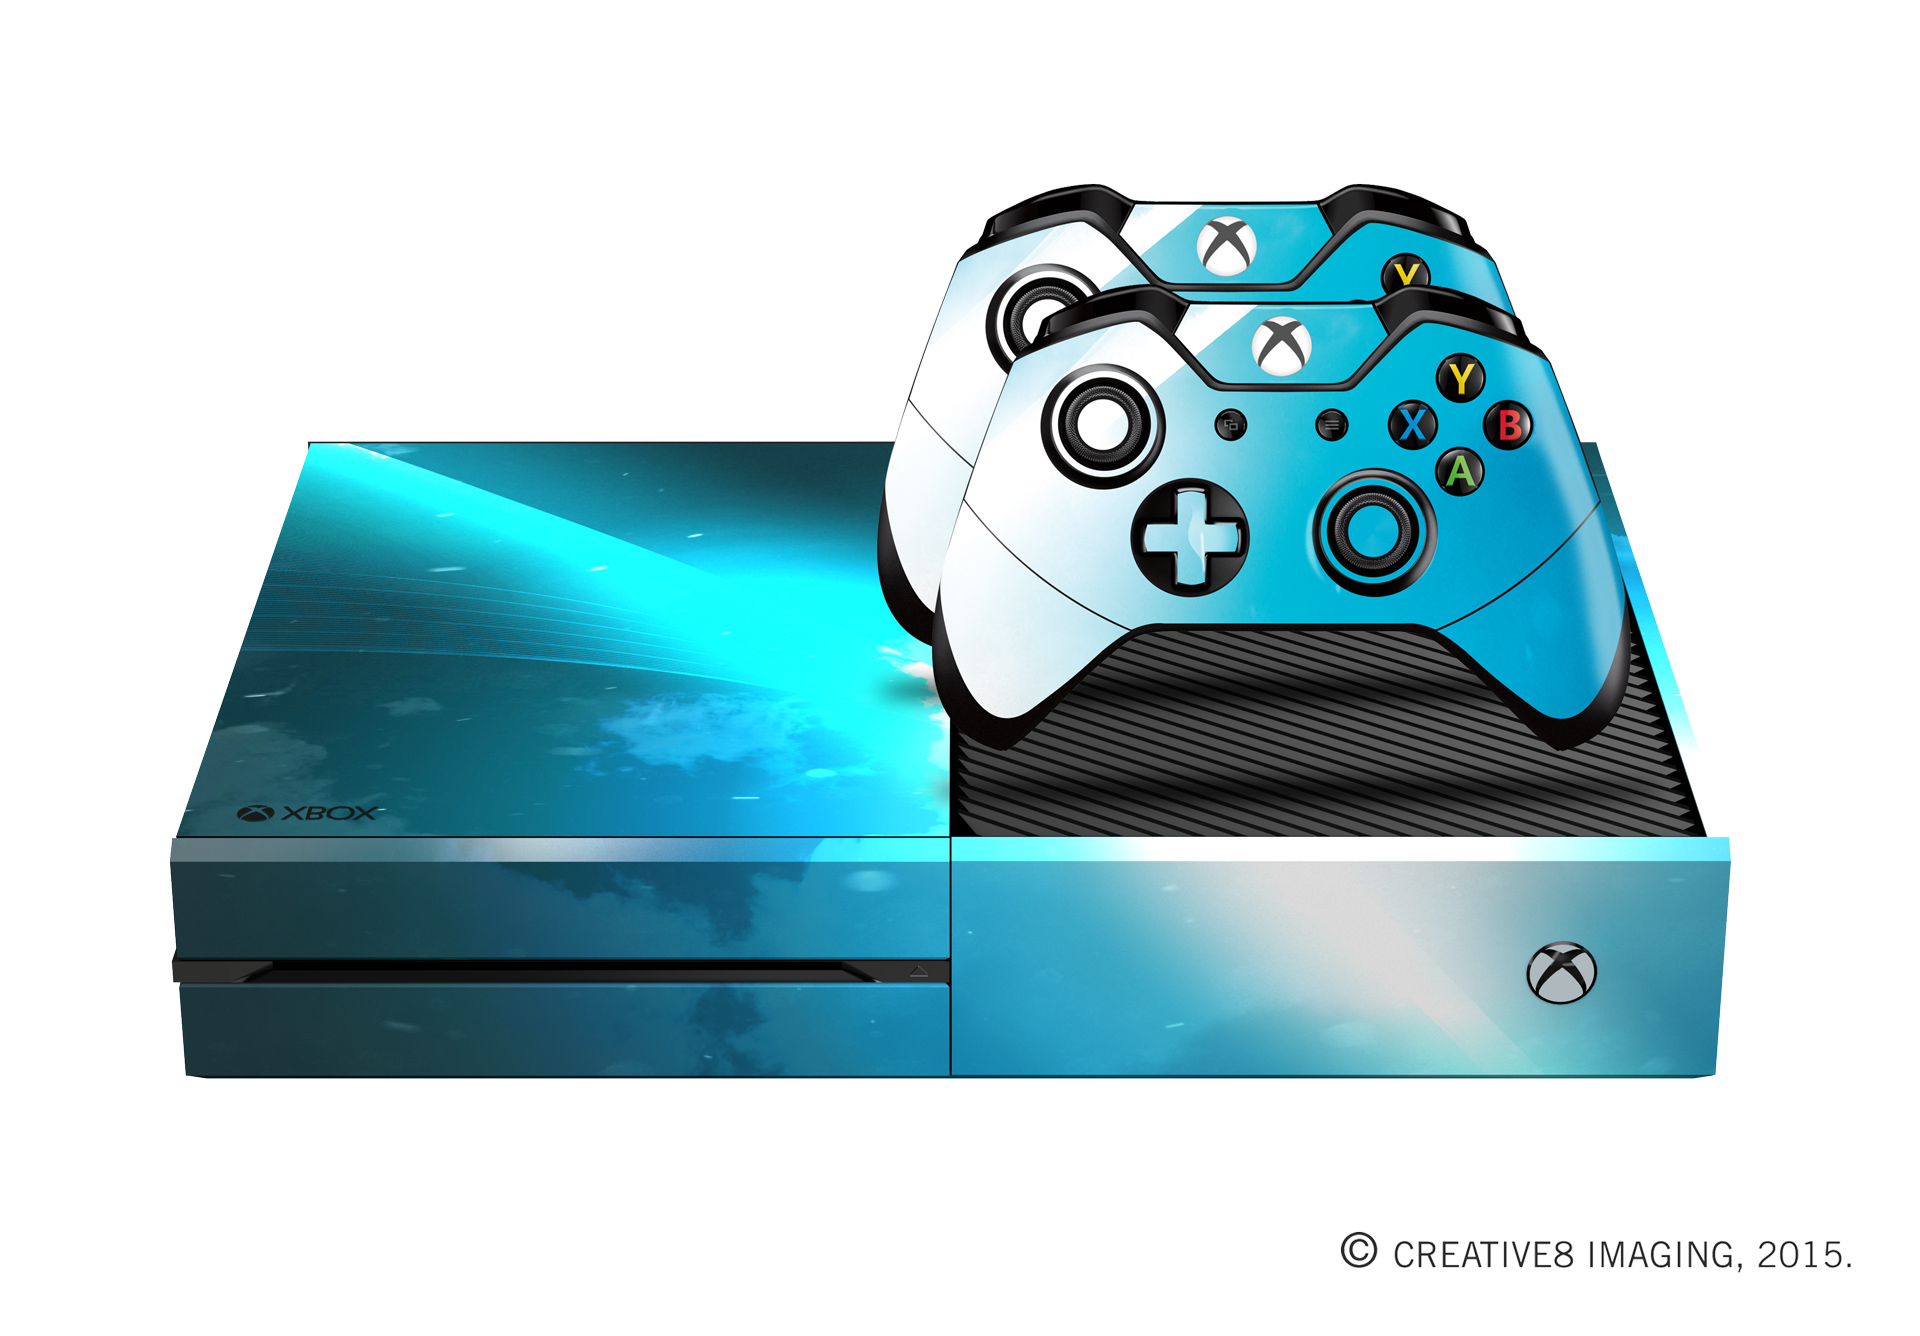 xbox one console skins www pixshark com images pics of steelers logo transparencies pics of steelers logo